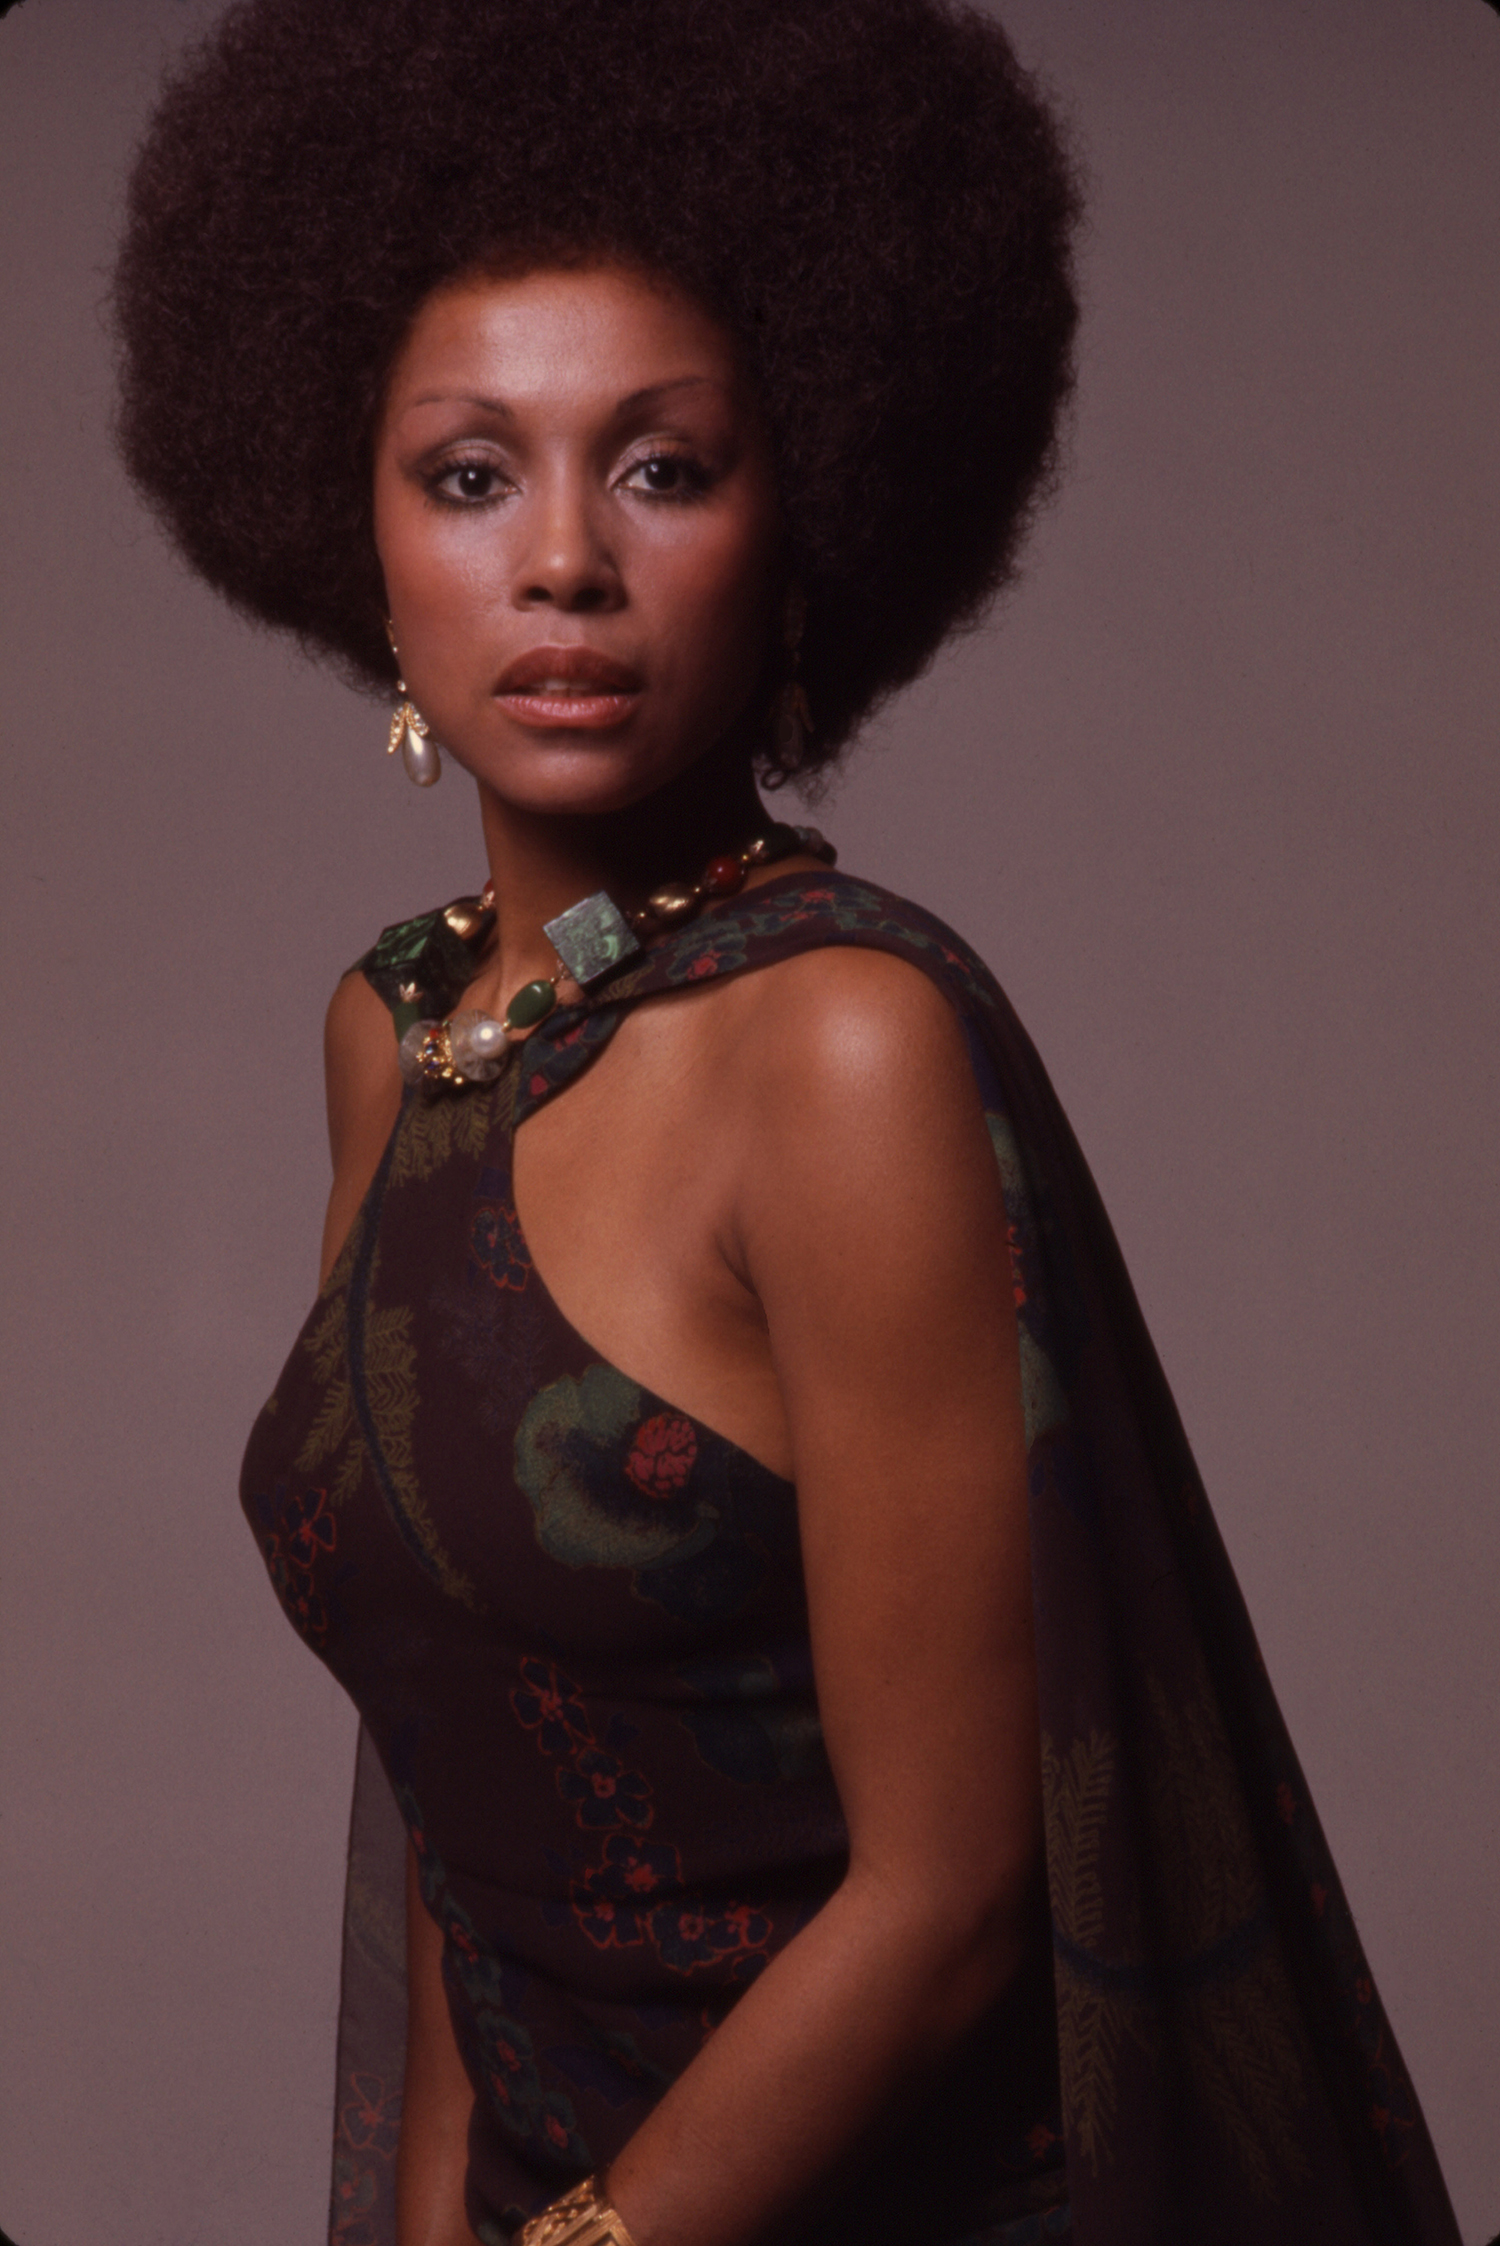 Statement on the Life and Legacy of Actress Diahann Carroll